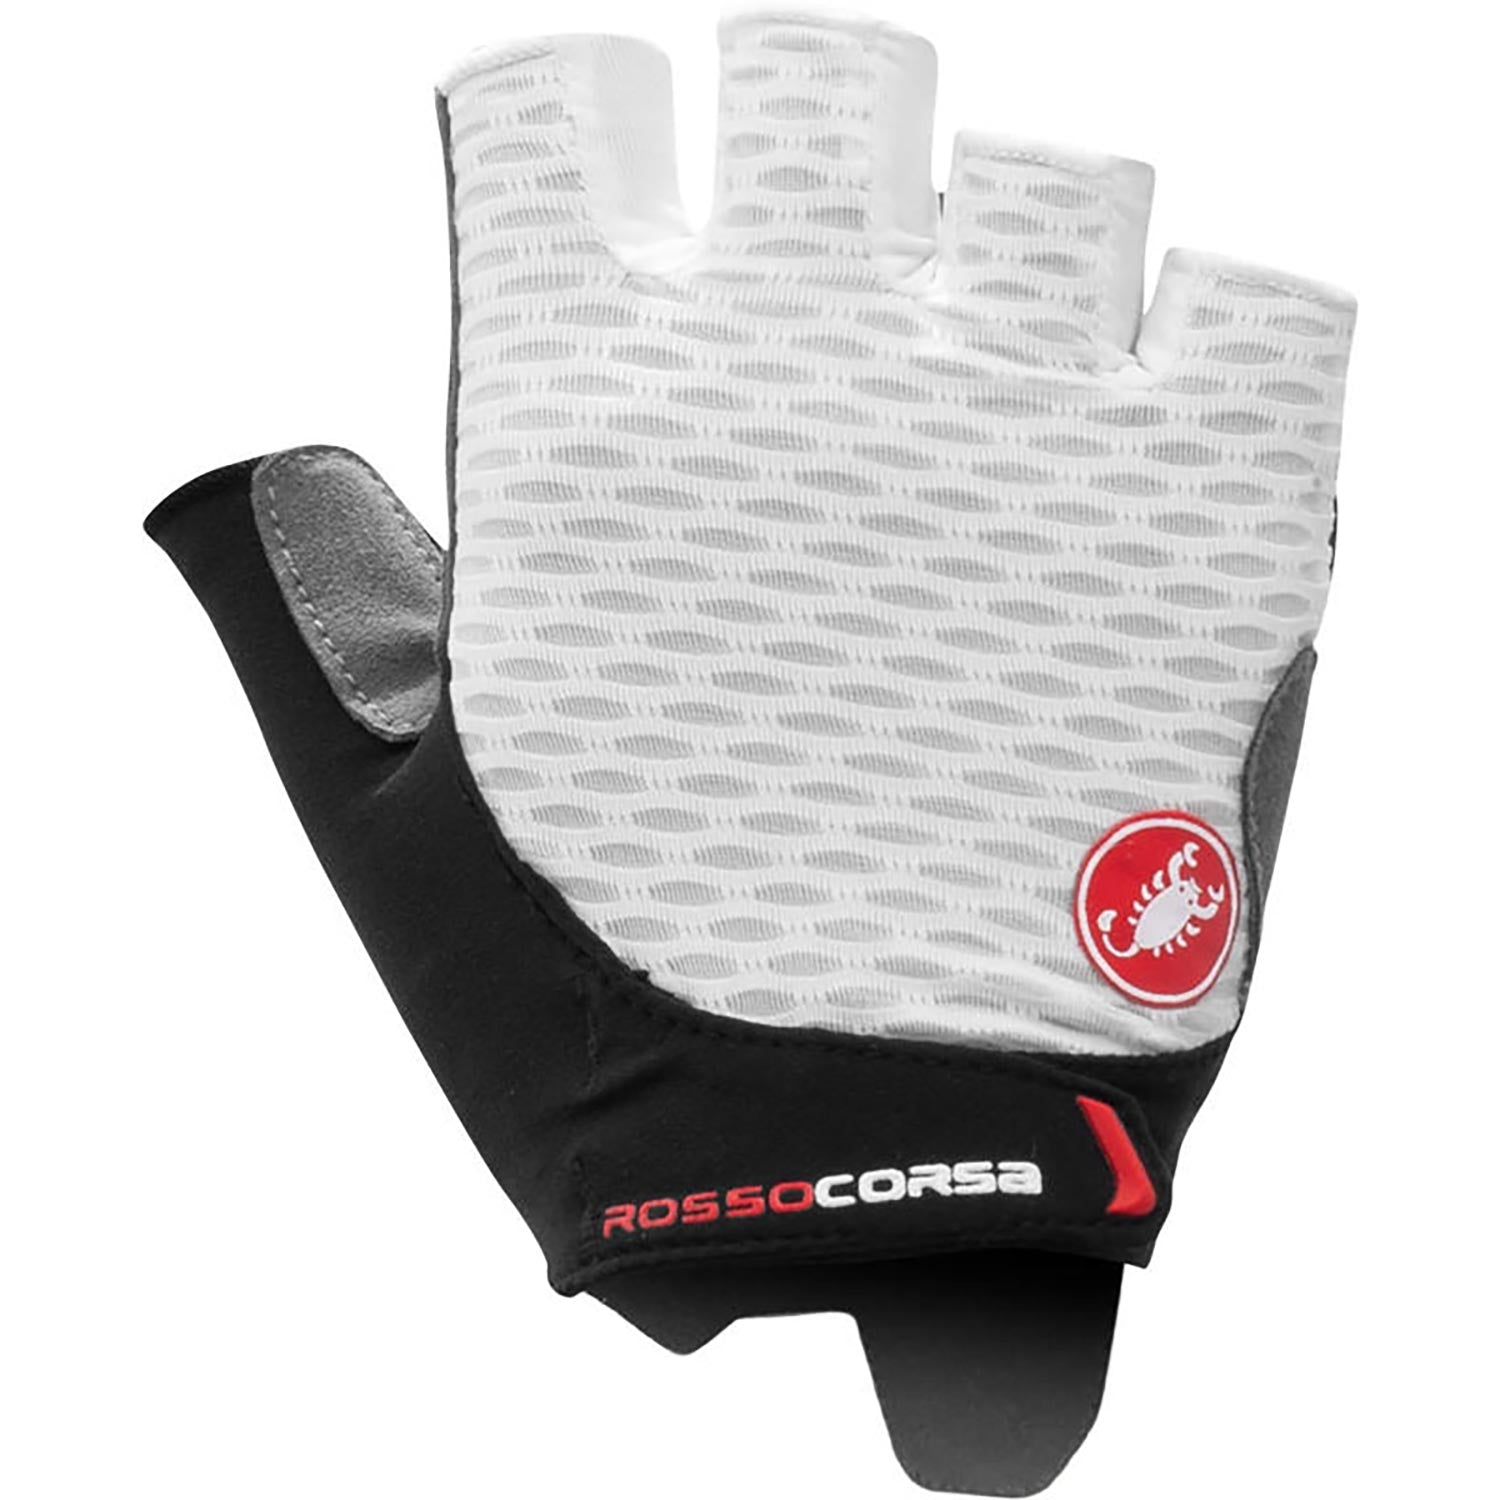 Castelli-Castelli Rosso Corsa 2 Women's Gloves-White-XS-CS210610011-saddleback-elite-performance-cycling